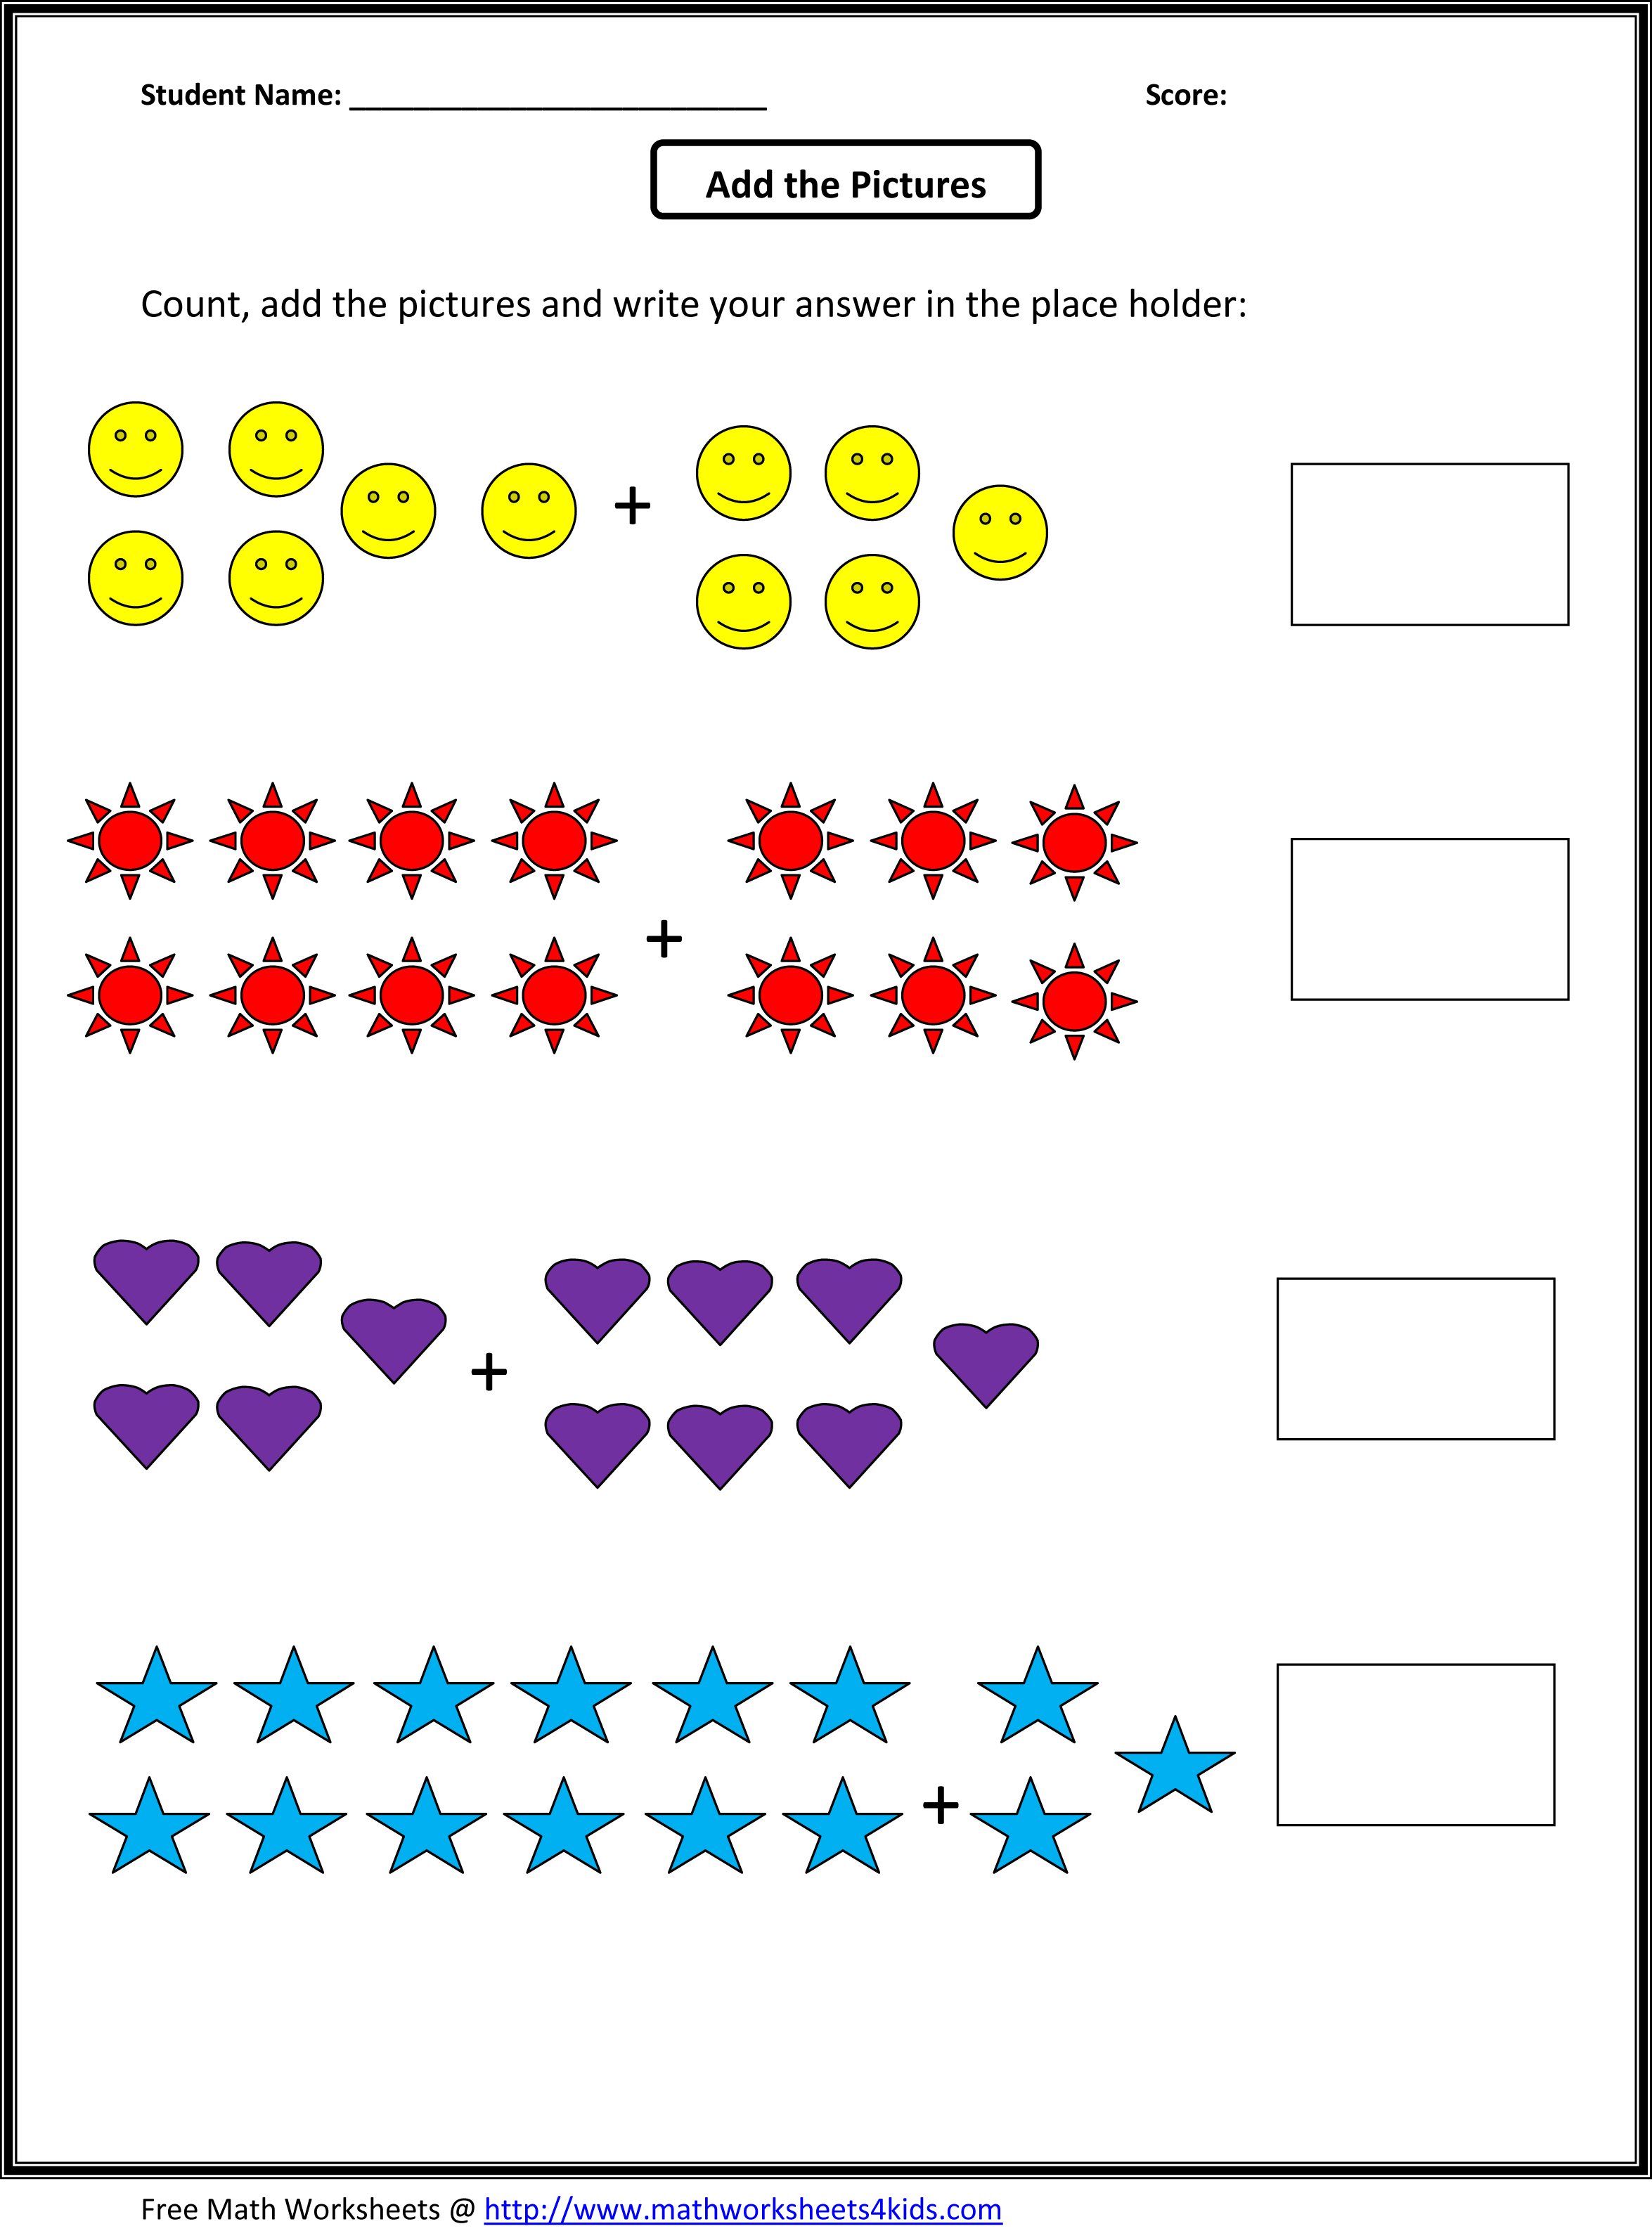 Proatmealus  Remarkable Grade  Maths Worksheet  Reocurent With Goodlooking Math Worksheets For St Grade Free  Reocurent With Cute The Cell Cycle Coloring Worksheet Answers Also Improper Fraction Worksheets In Addition Nd Grade Vocabulary Worksheets And Period And Frequency Worksheet As Well As D Shapes Worksheet Additionally Genre Worksheets From Reocurentcom With Proatmealus  Goodlooking Grade  Maths Worksheet  Reocurent With Cute Math Worksheets For St Grade Free  Reocurent And Remarkable The Cell Cycle Coloring Worksheet Answers Also Improper Fraction Worksheets In Addition Nd Grade Vocabulary Worksheets From Reocurentcom